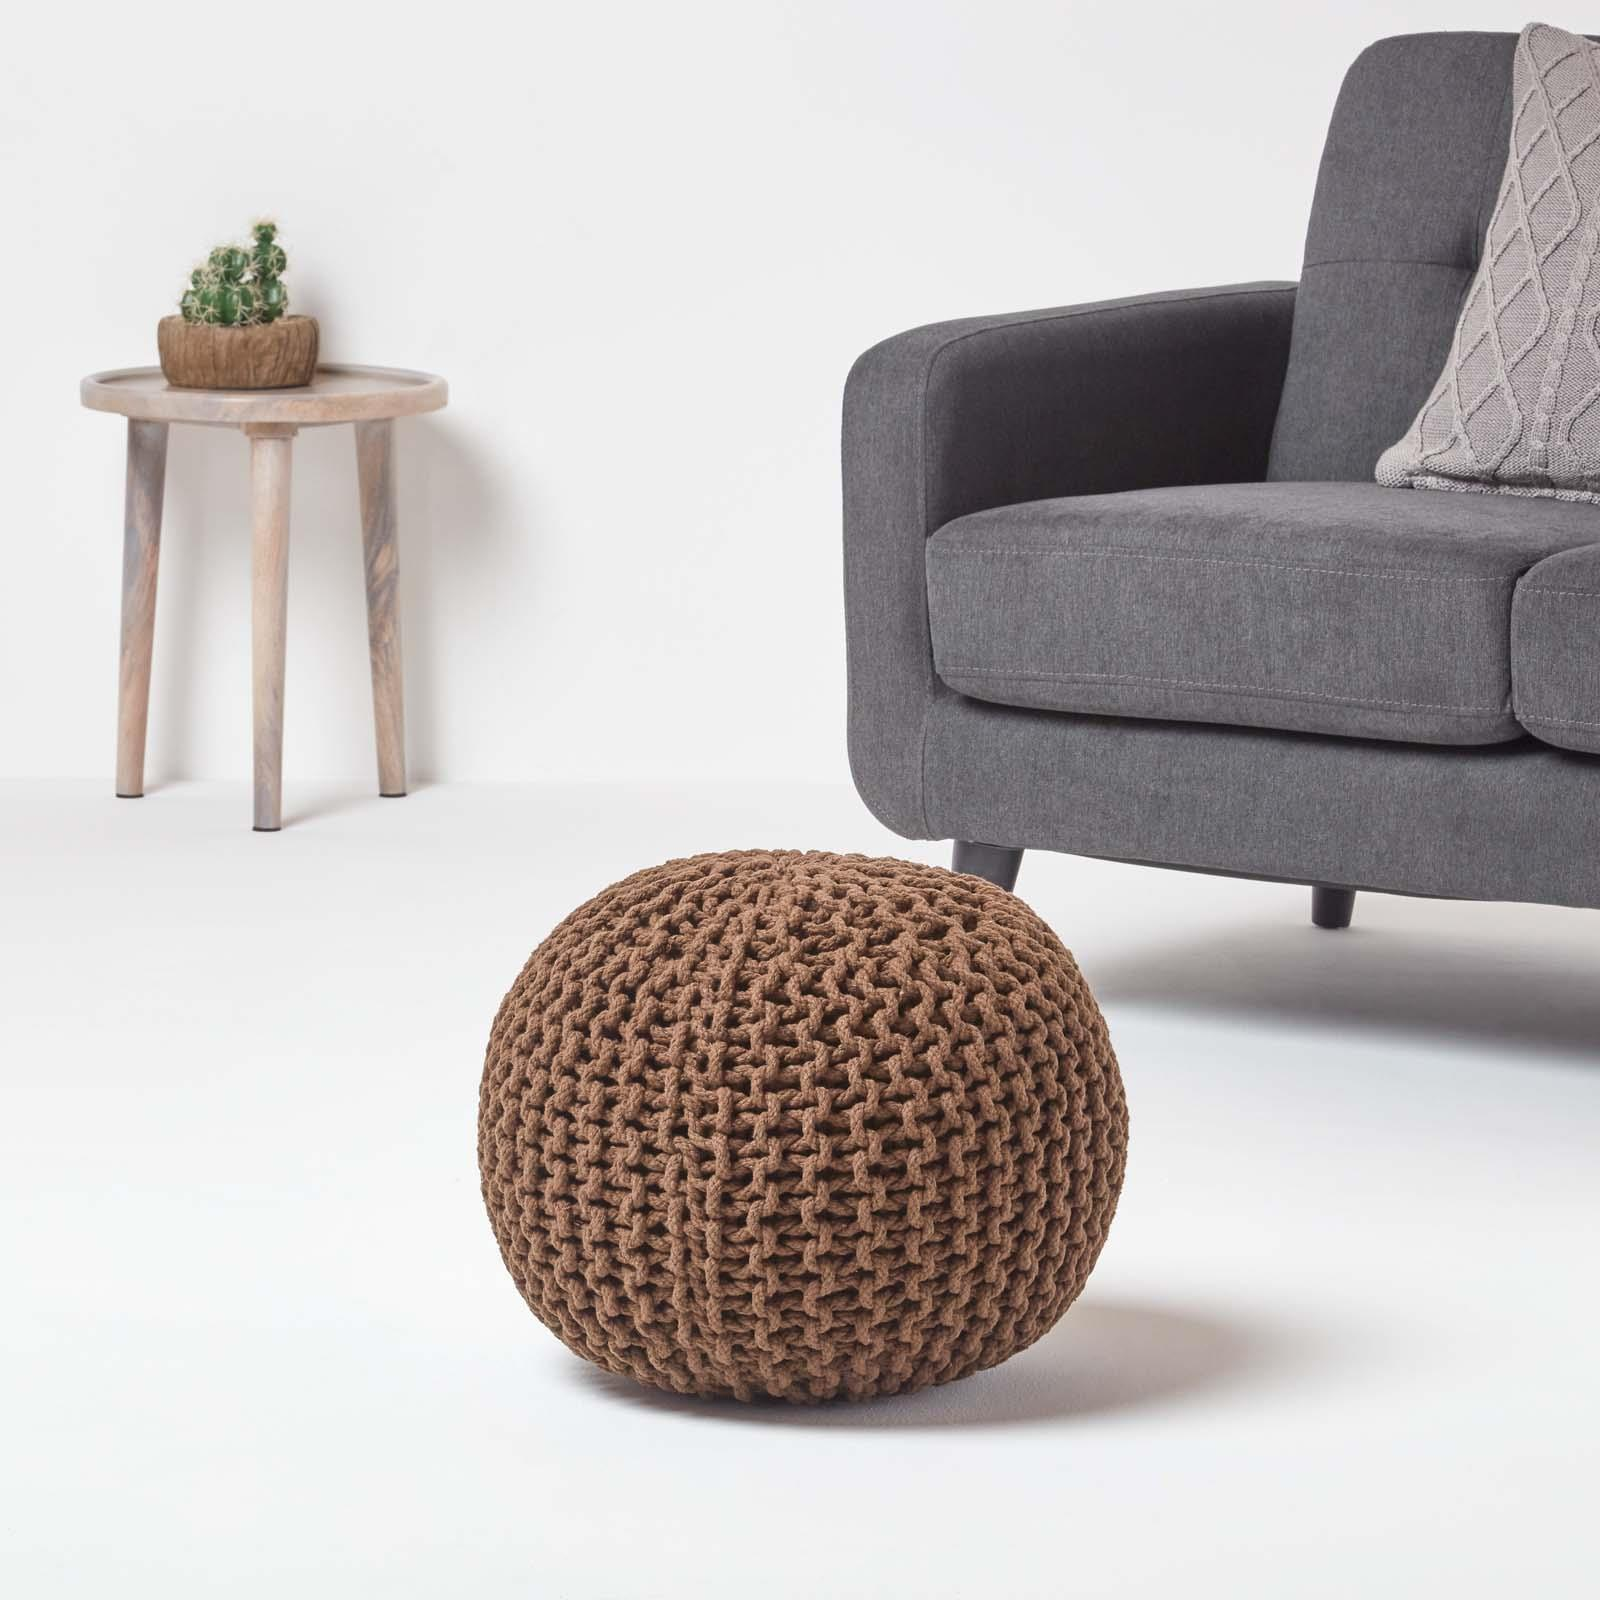 Hand-Knitted-100-Cotton-Pouffes-Round-Sphere-Or-Cube-Square-Chunky-Footstools thumbnail 34